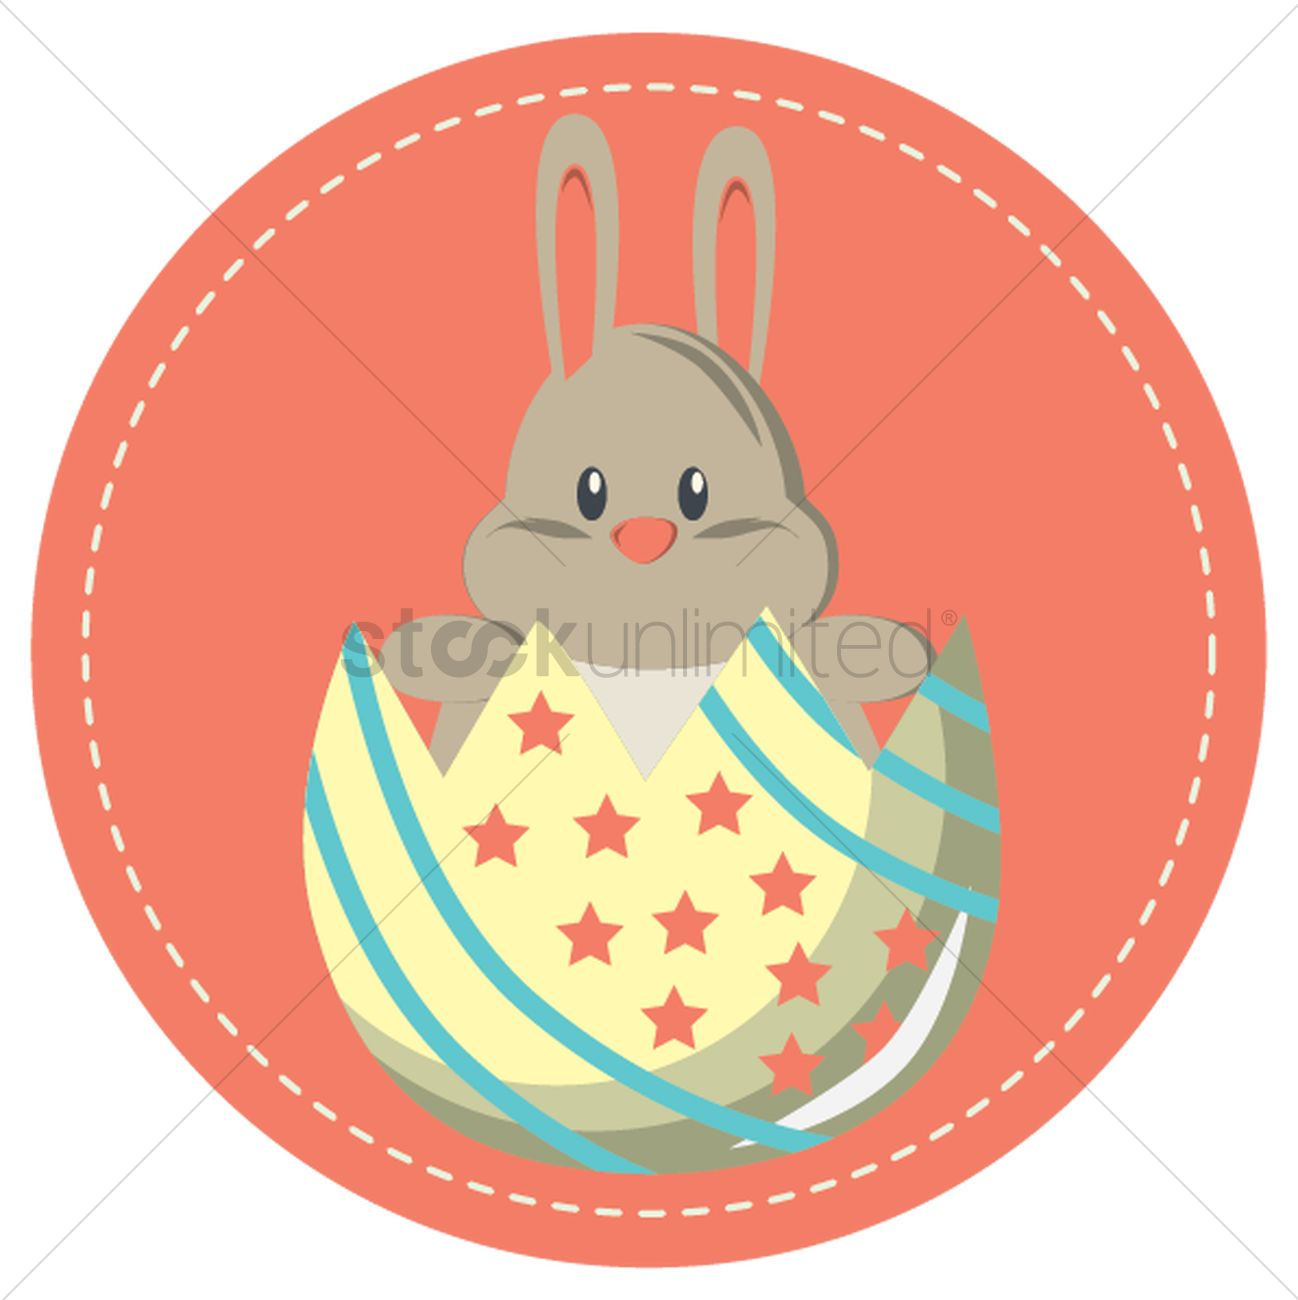 Easter bunny clipart with cracked egg banner download Easter bunny in a cracked egg Vector Image - 1426888 | StockUnlimited banner download